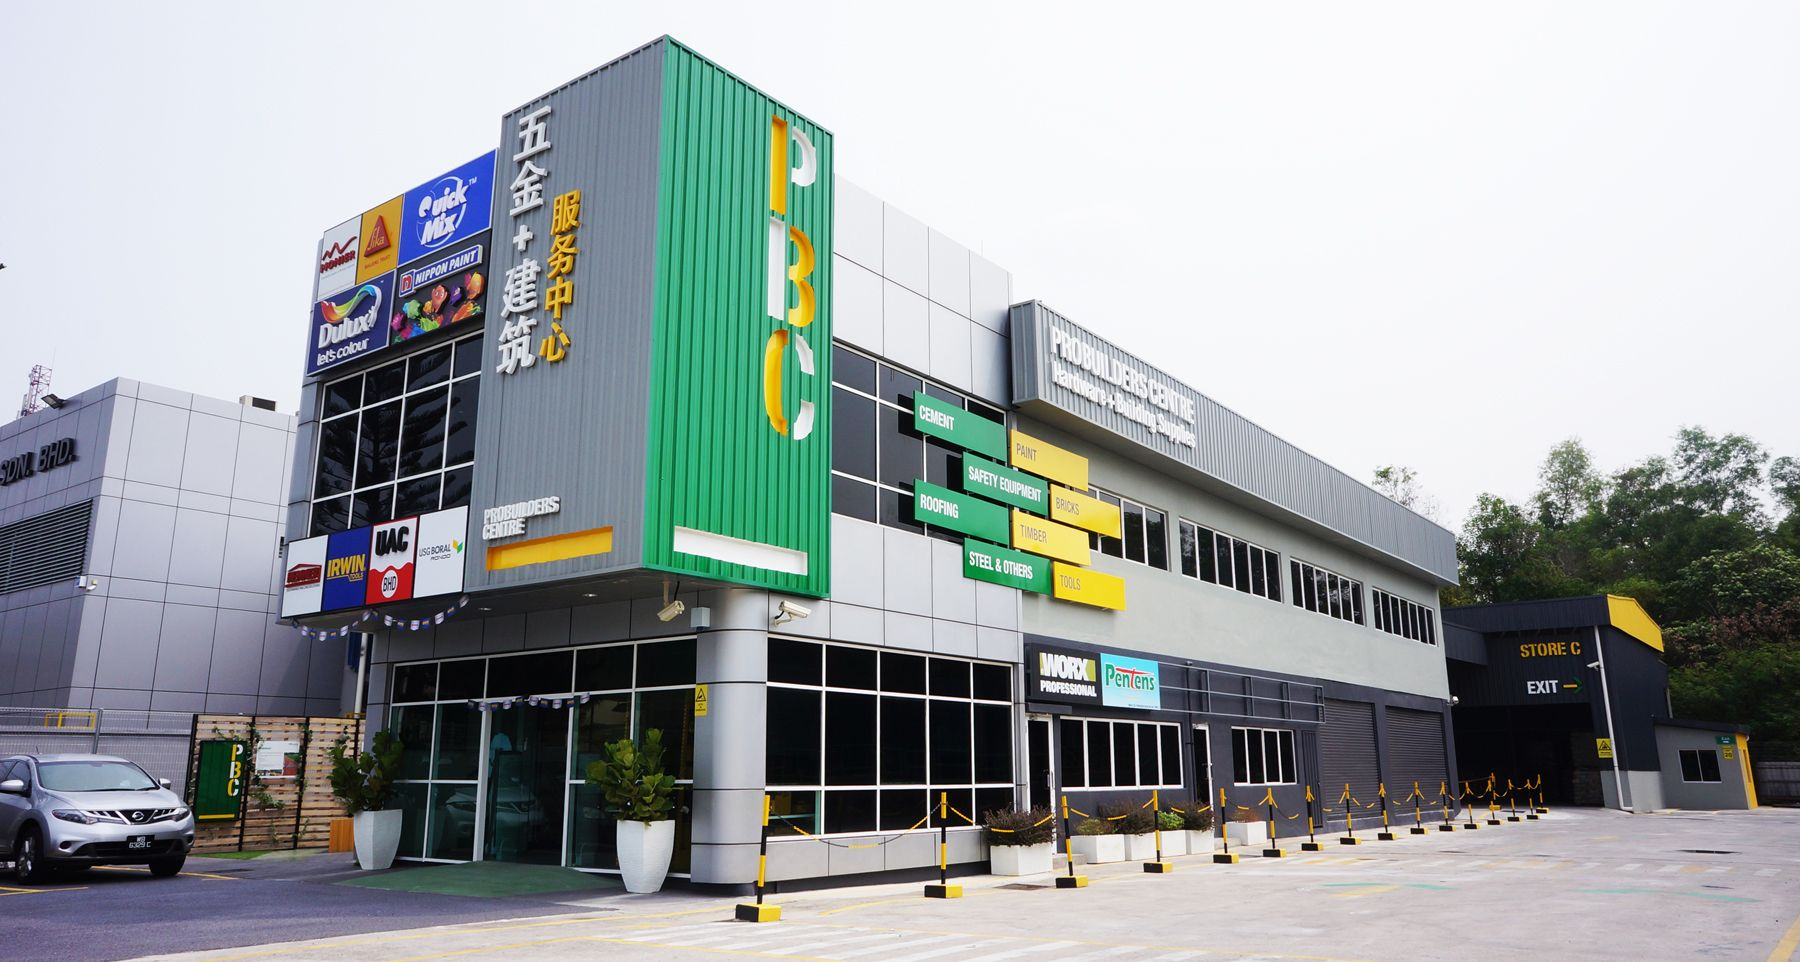 Pro Builders Centre Puchong Malaysia Puchong, Hardware